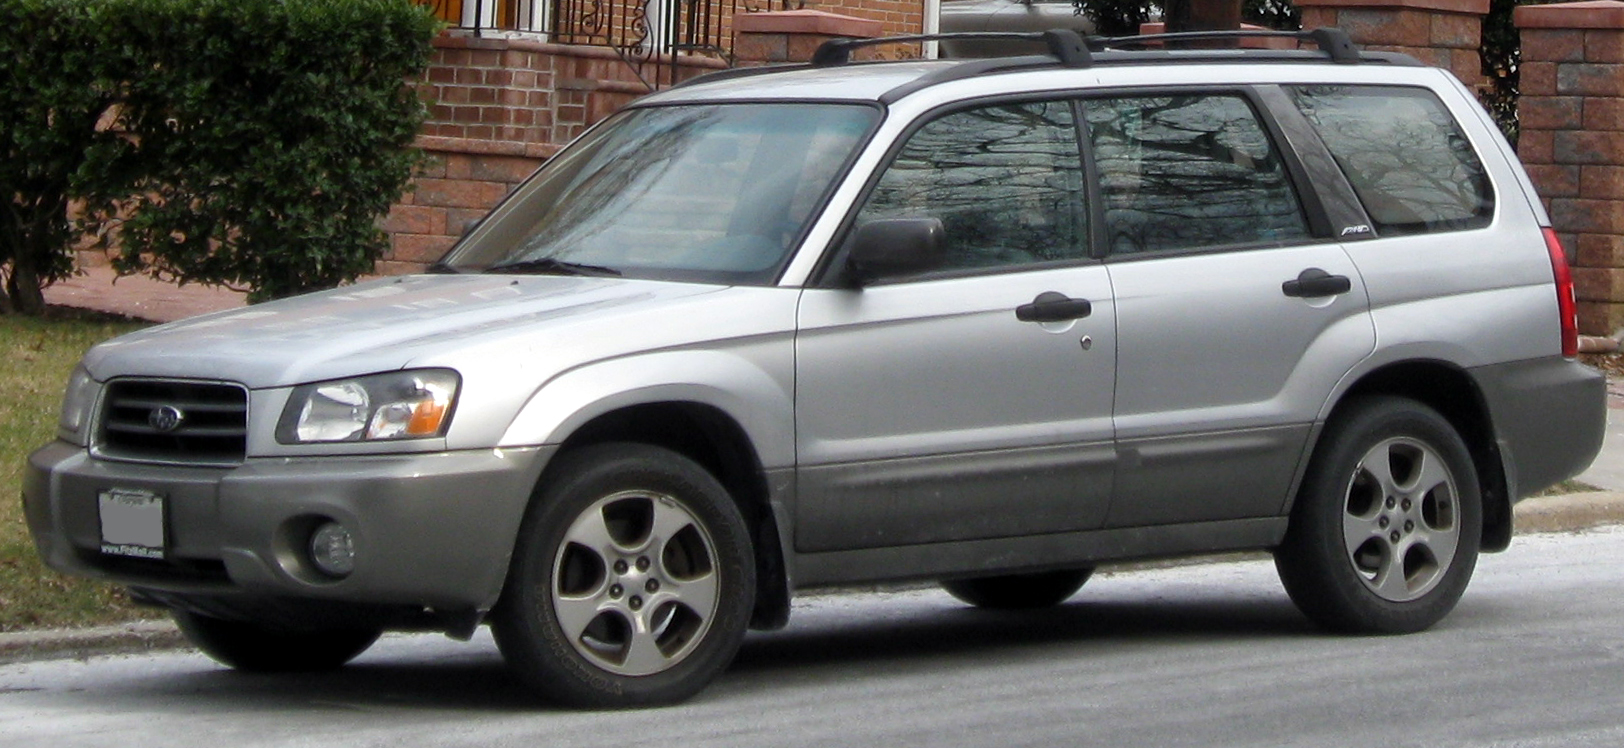 2003 Subaru Forester Information And Photos Momentcar